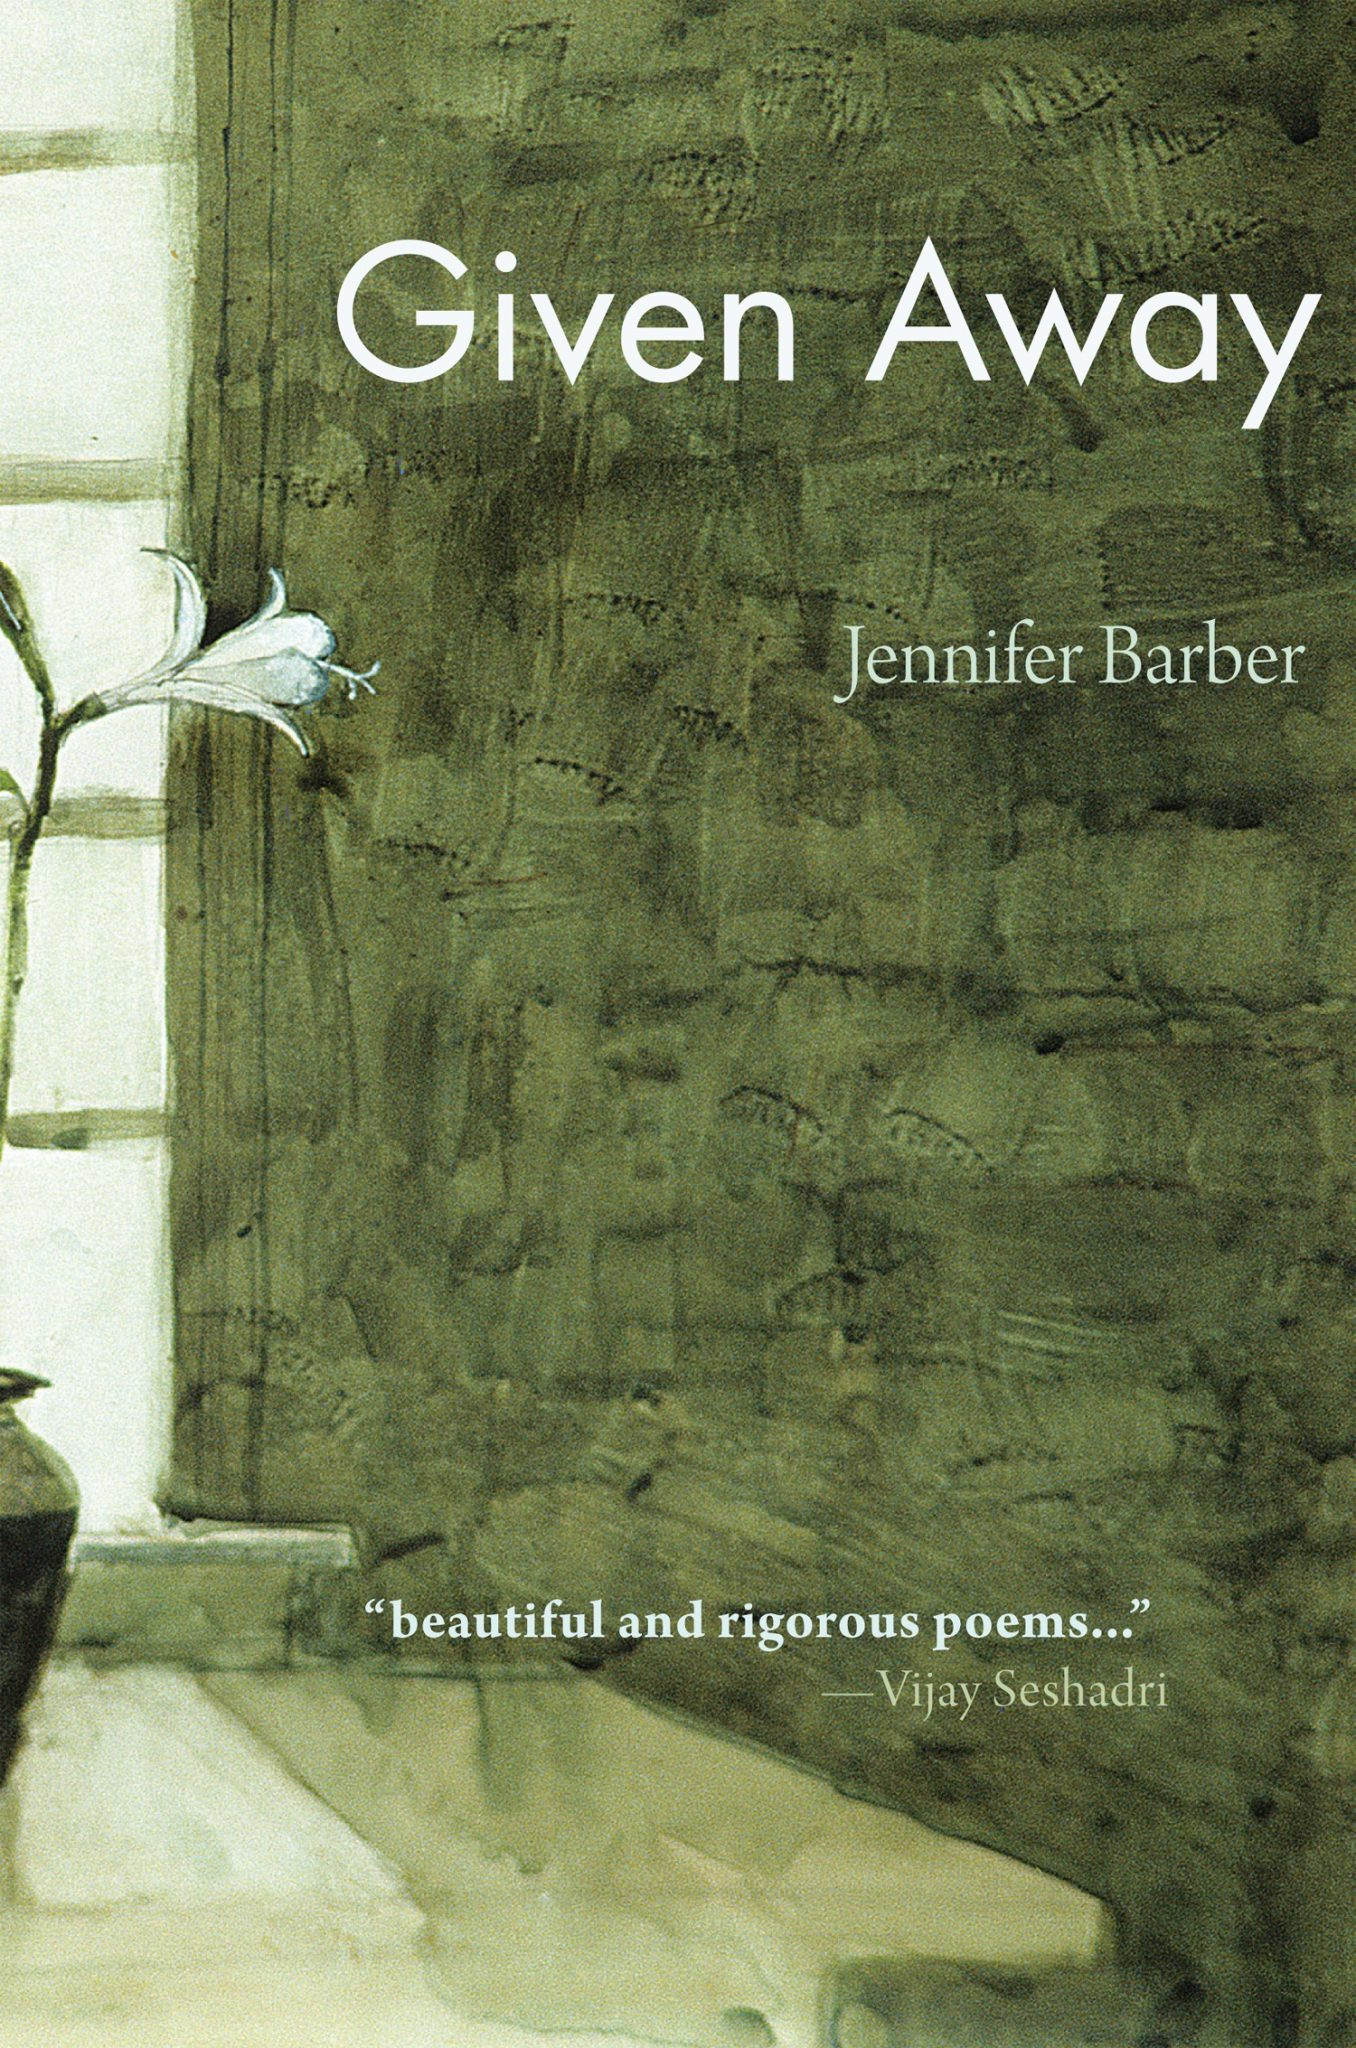 Given Away by Jennifer Barber